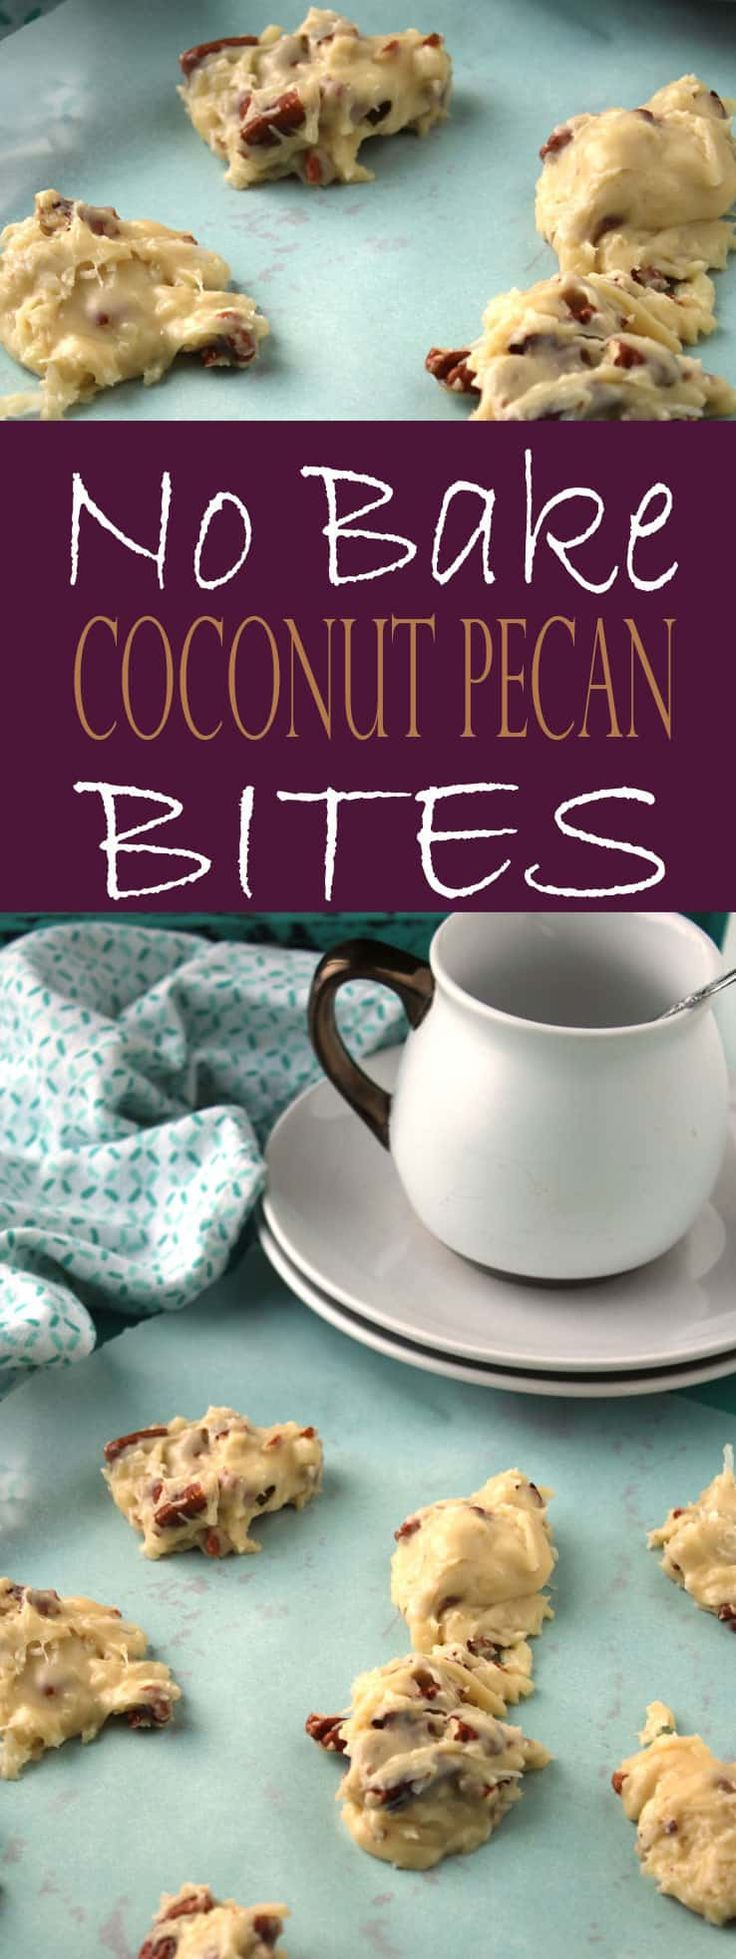 These No-Bake Pecan Coconut Clusters (Coconut Pecan Bites) are an INCREDIBLE no-bake dessert! You'll love this no-bake dessert recipe containing pecans, coconut flakes, white chocolate, and condensed milk. #nobake #dessert #coconut #pecan #nobakedessert